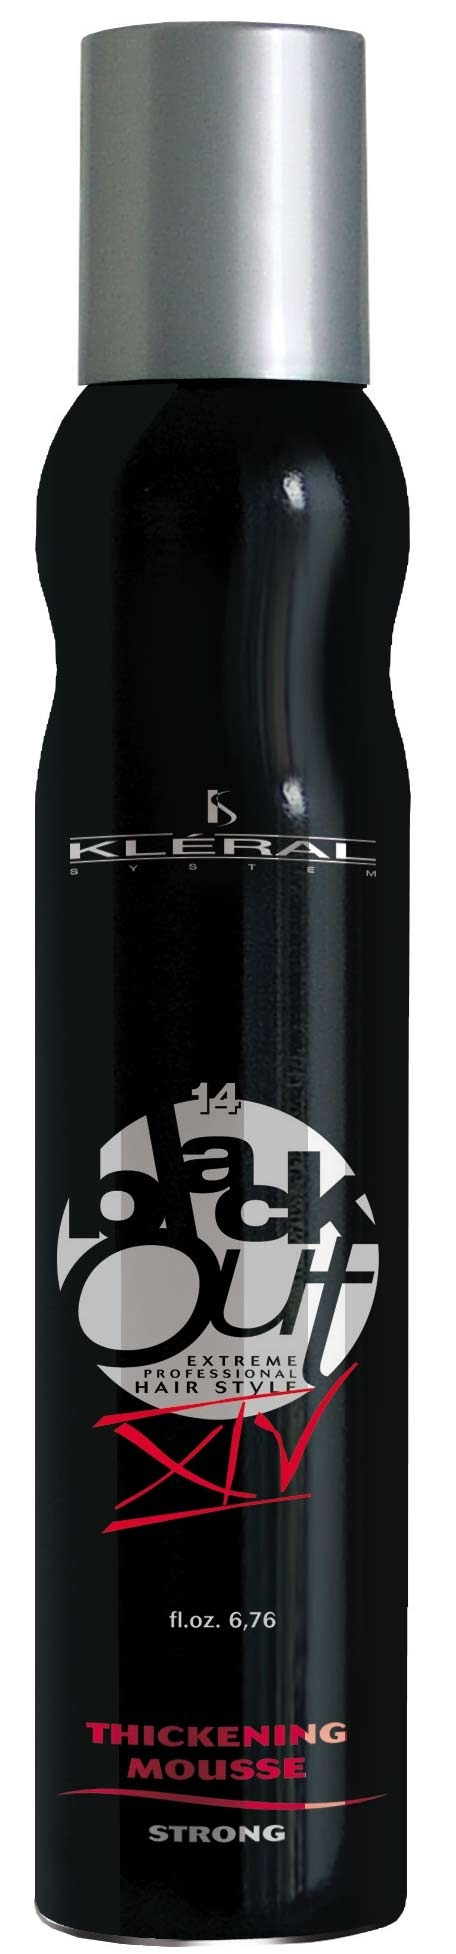 Kléral System Black Out Thickening Mousse Strong XIV 200 ml - pěnové tužidlo na vlasy